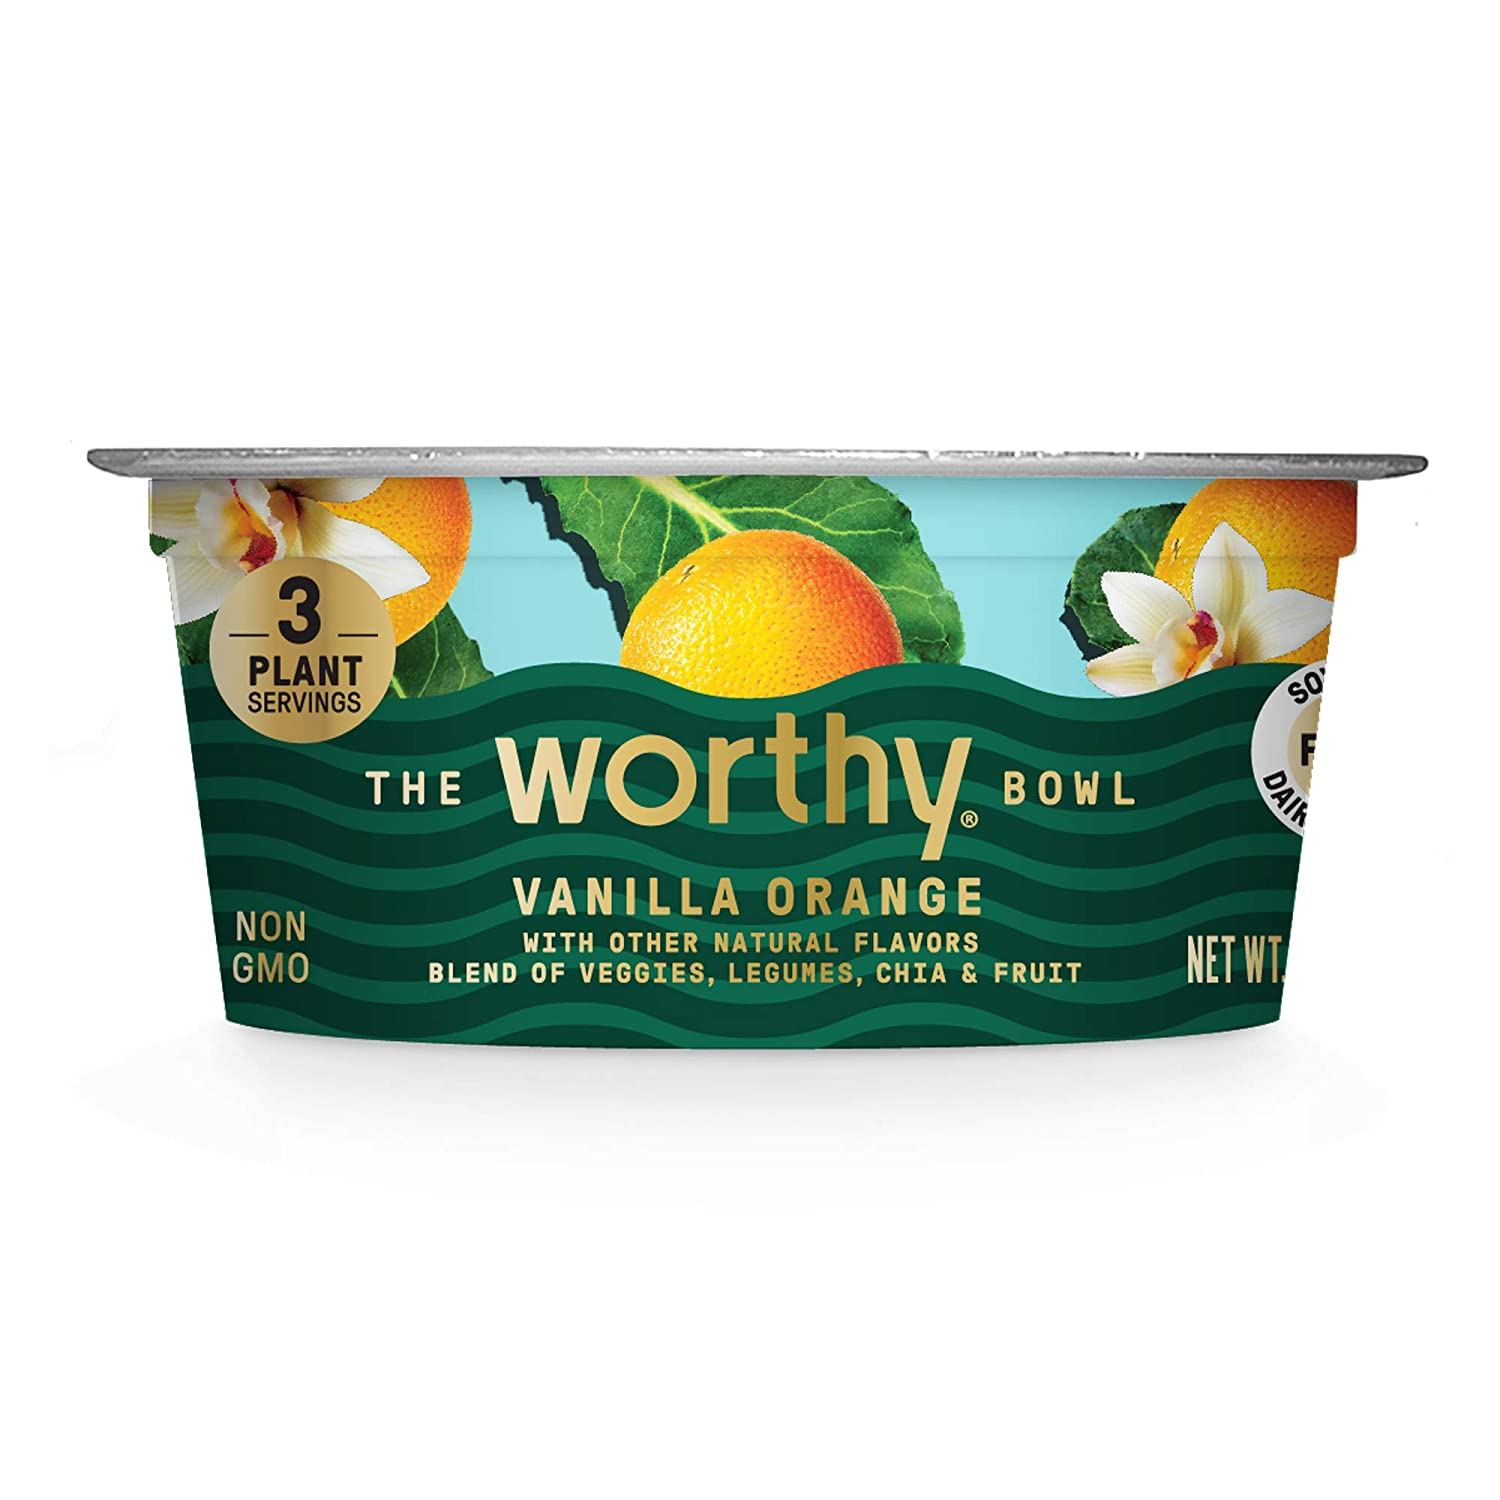 WORTHY BOWL Blended Veggie and Fruit Bowls | Vegan, non-gmo, gluten free | High protein, high fiber, low sugar healthy snacks or meals for adults | 5.7 Oz Bowls | (Vanilla Orange, 6 Pack)